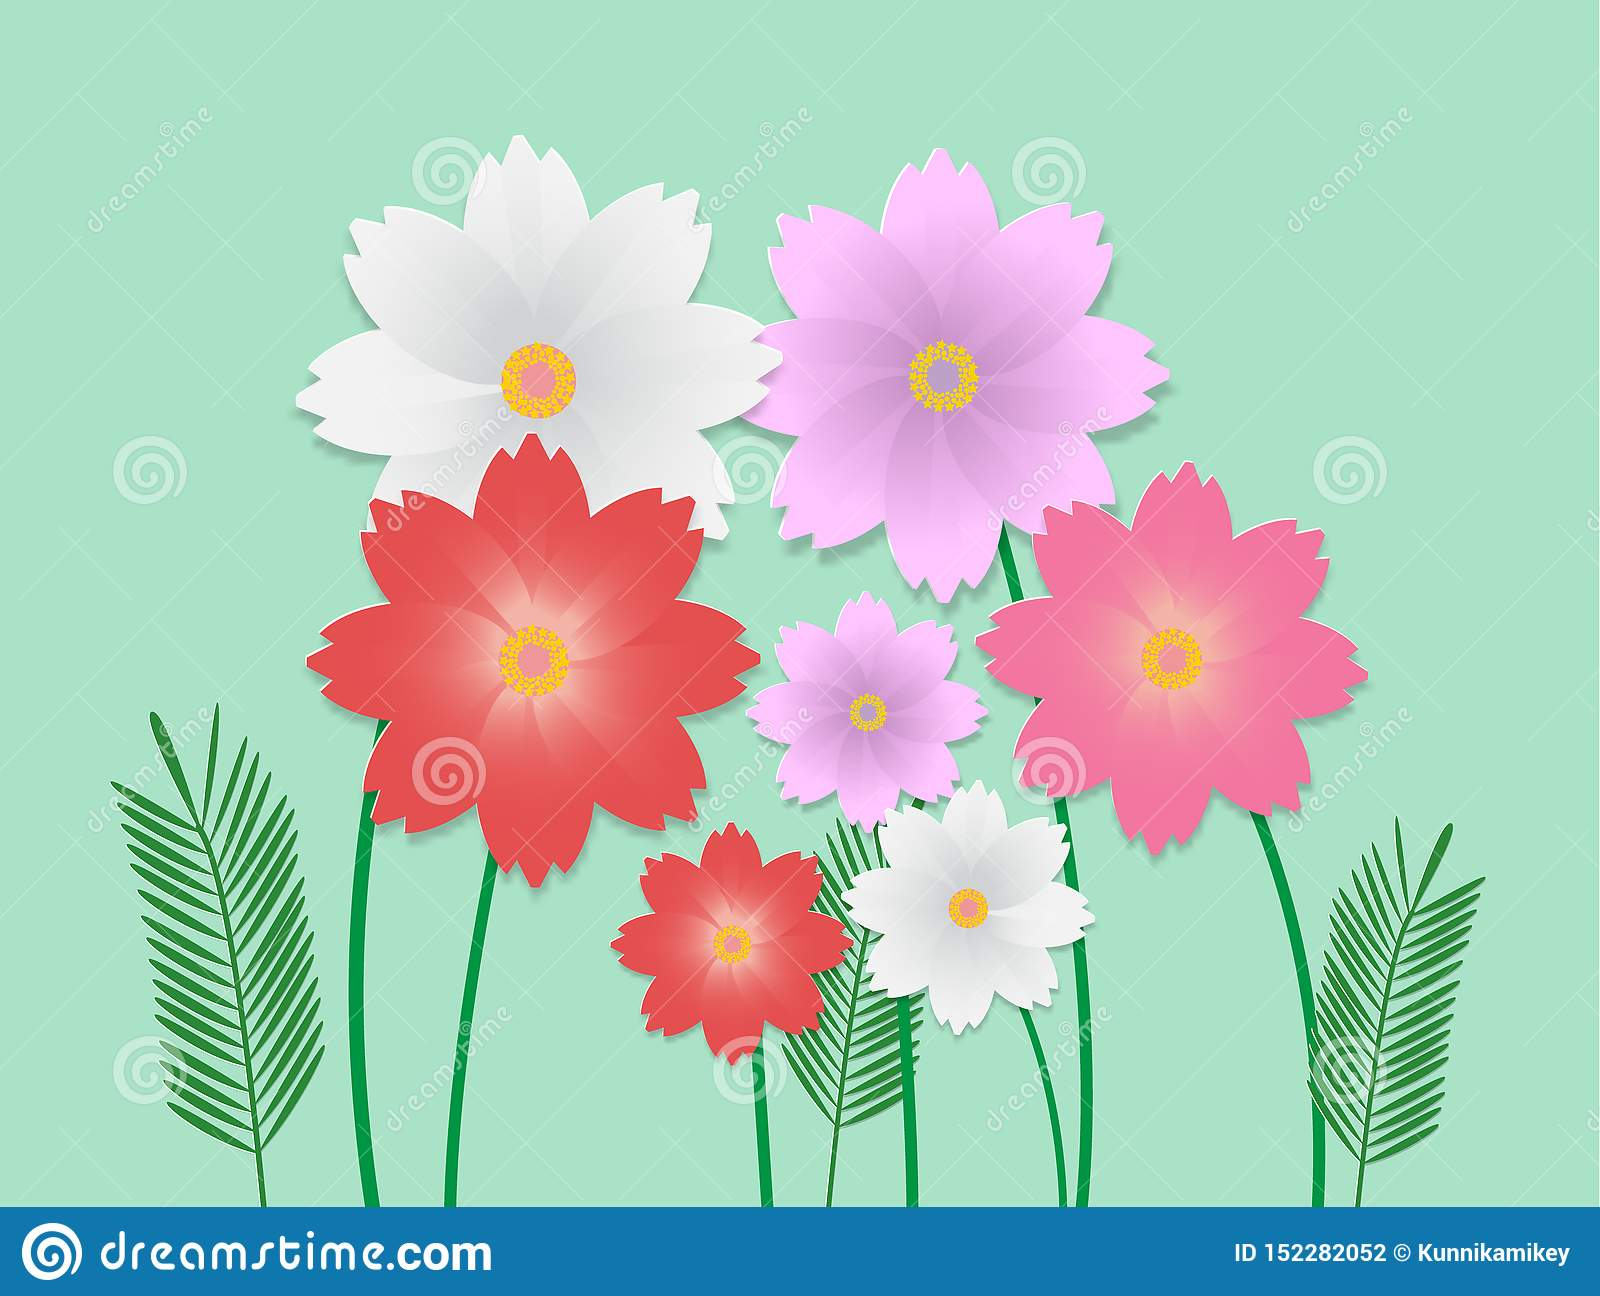 Vector image of colorful flower